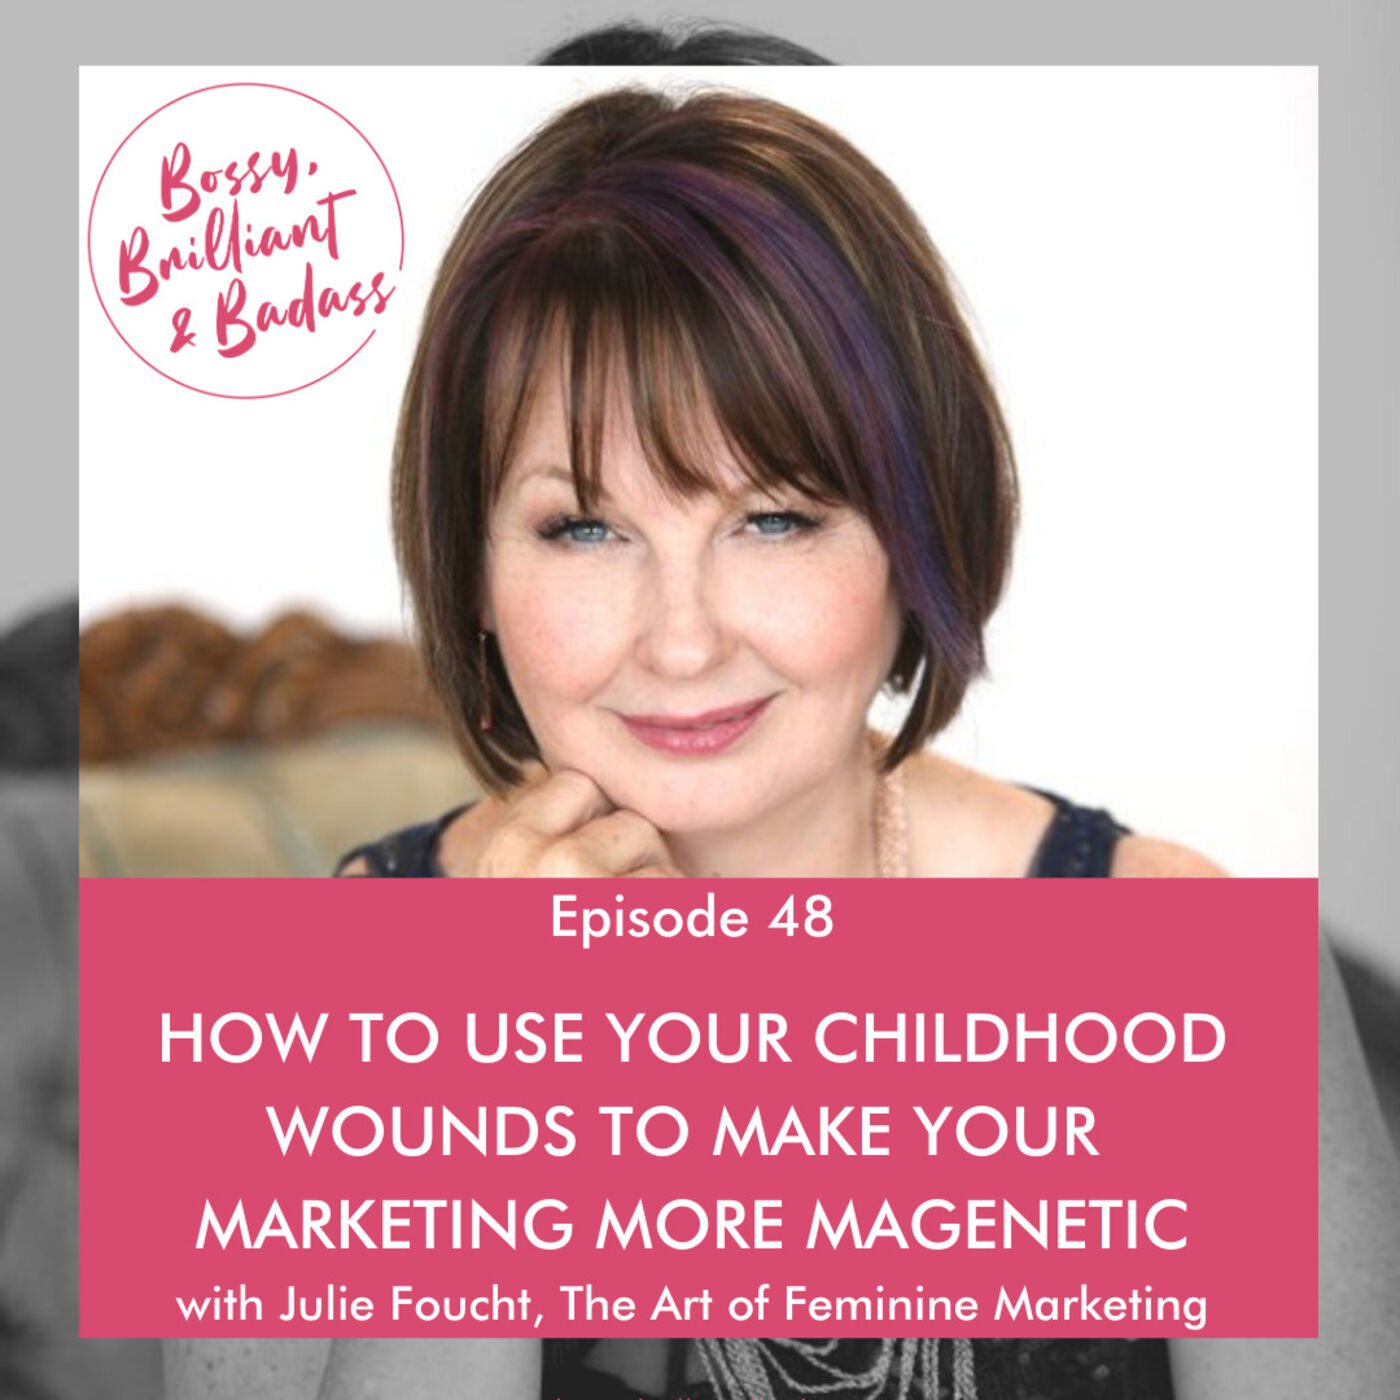 How to Use Your Childhood Wounds to Make Your Marketing More Magnetic (with Julie Foucht)